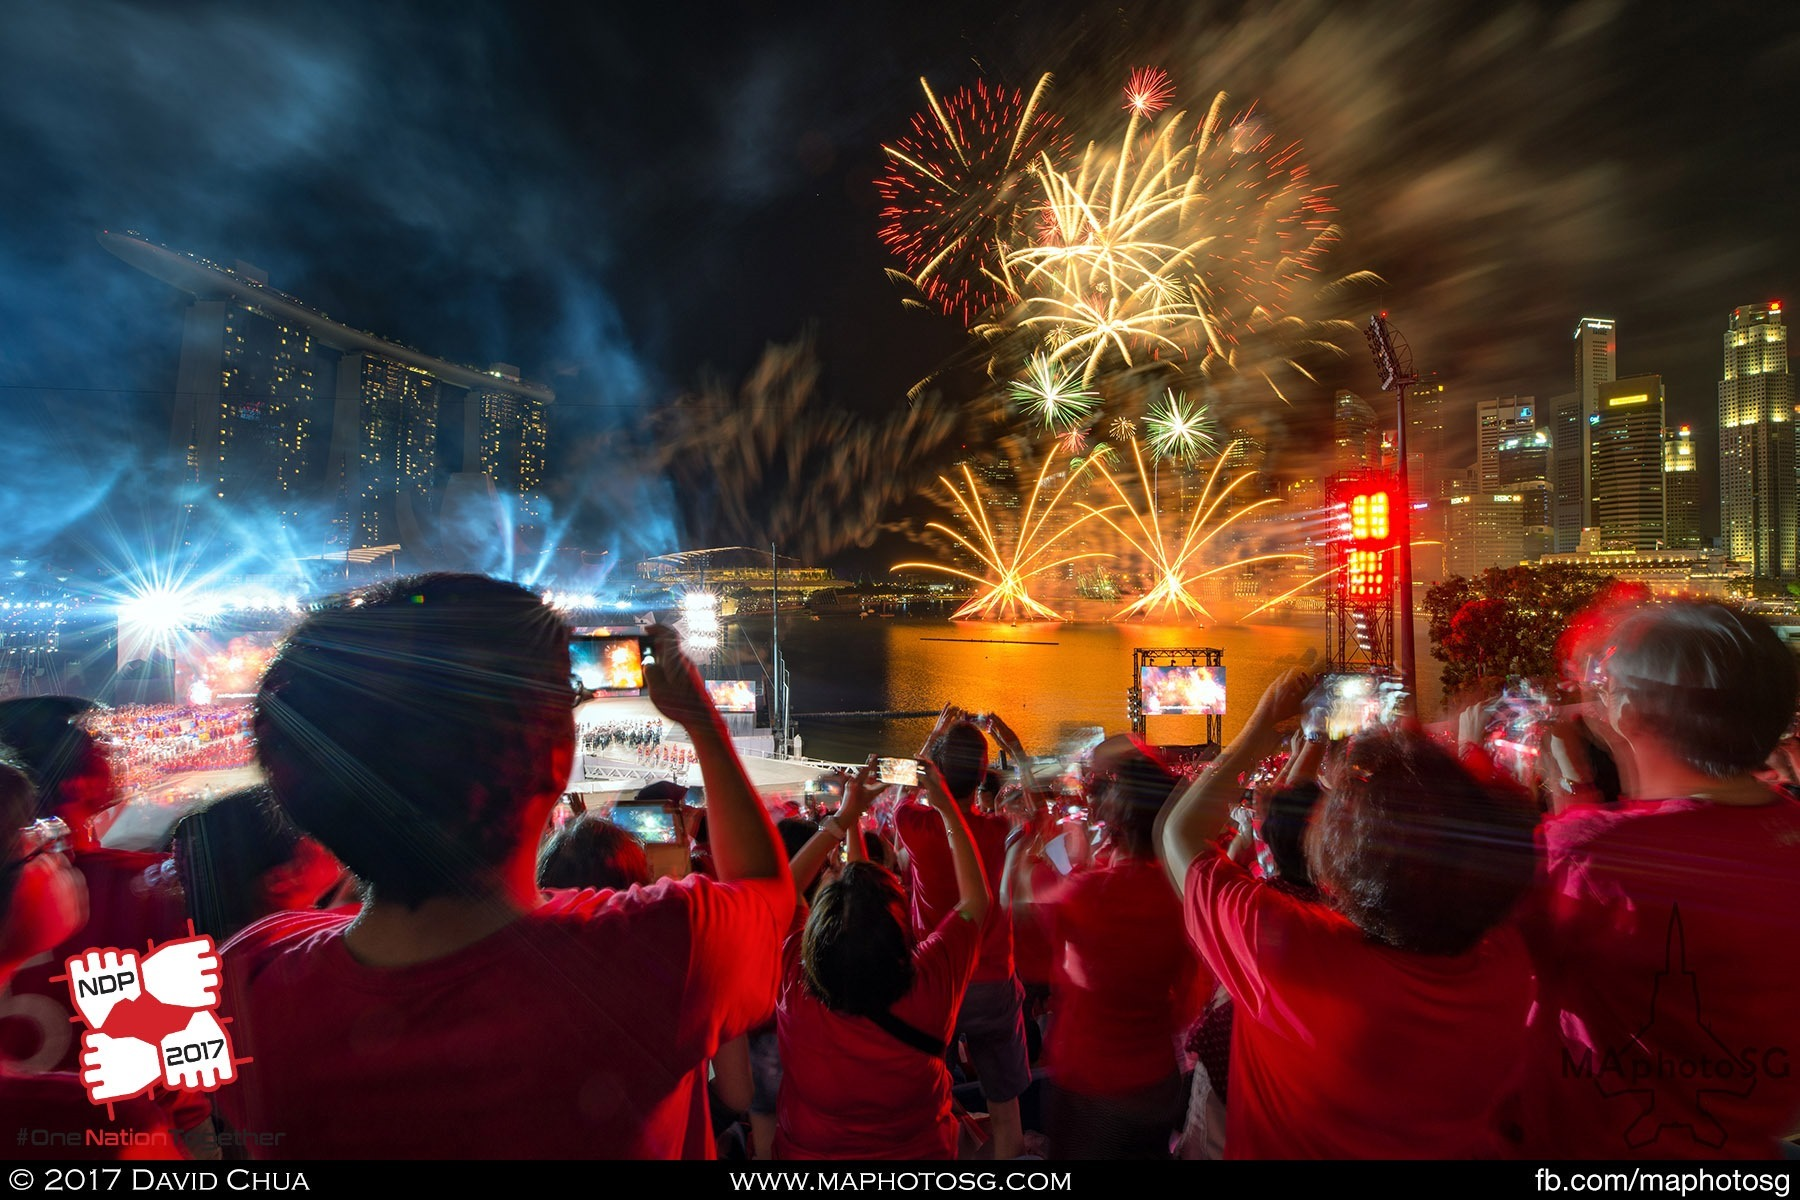 40. Grand Finale as spectators sing to a medley of NDP songs while fireworks goes off in the Marina Bay.